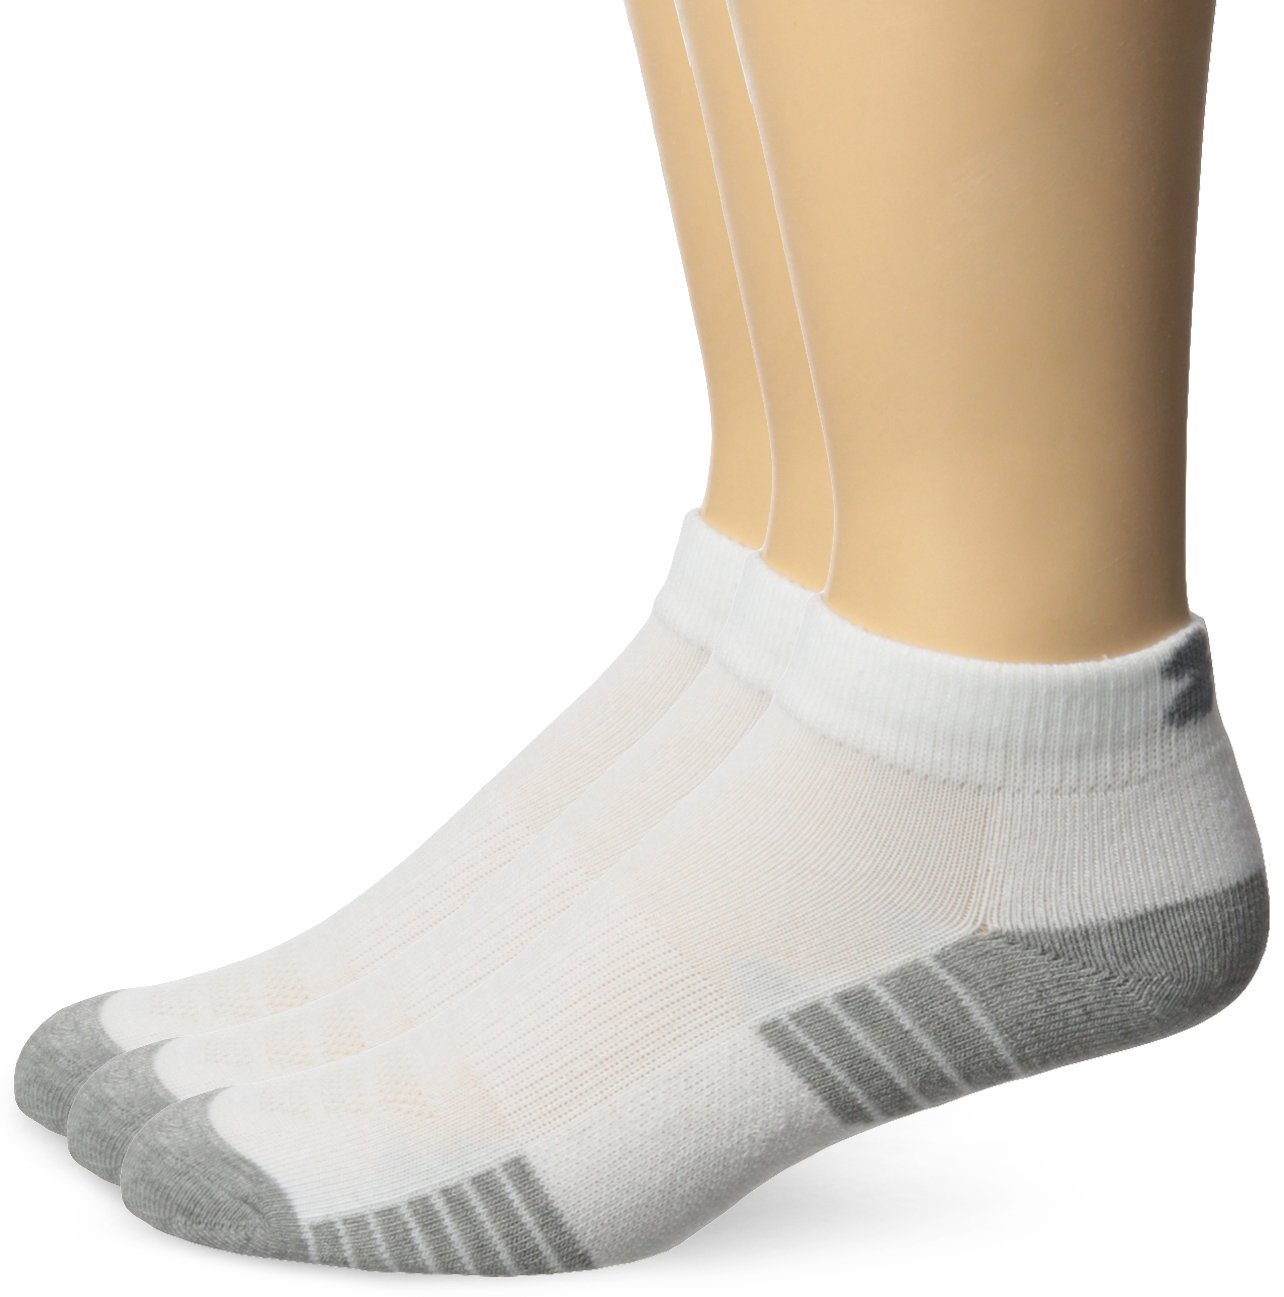 Under Armour Men's HeatGear Tech Lo Cut Socks (3 Pack) Under Armour Socks U326M-P